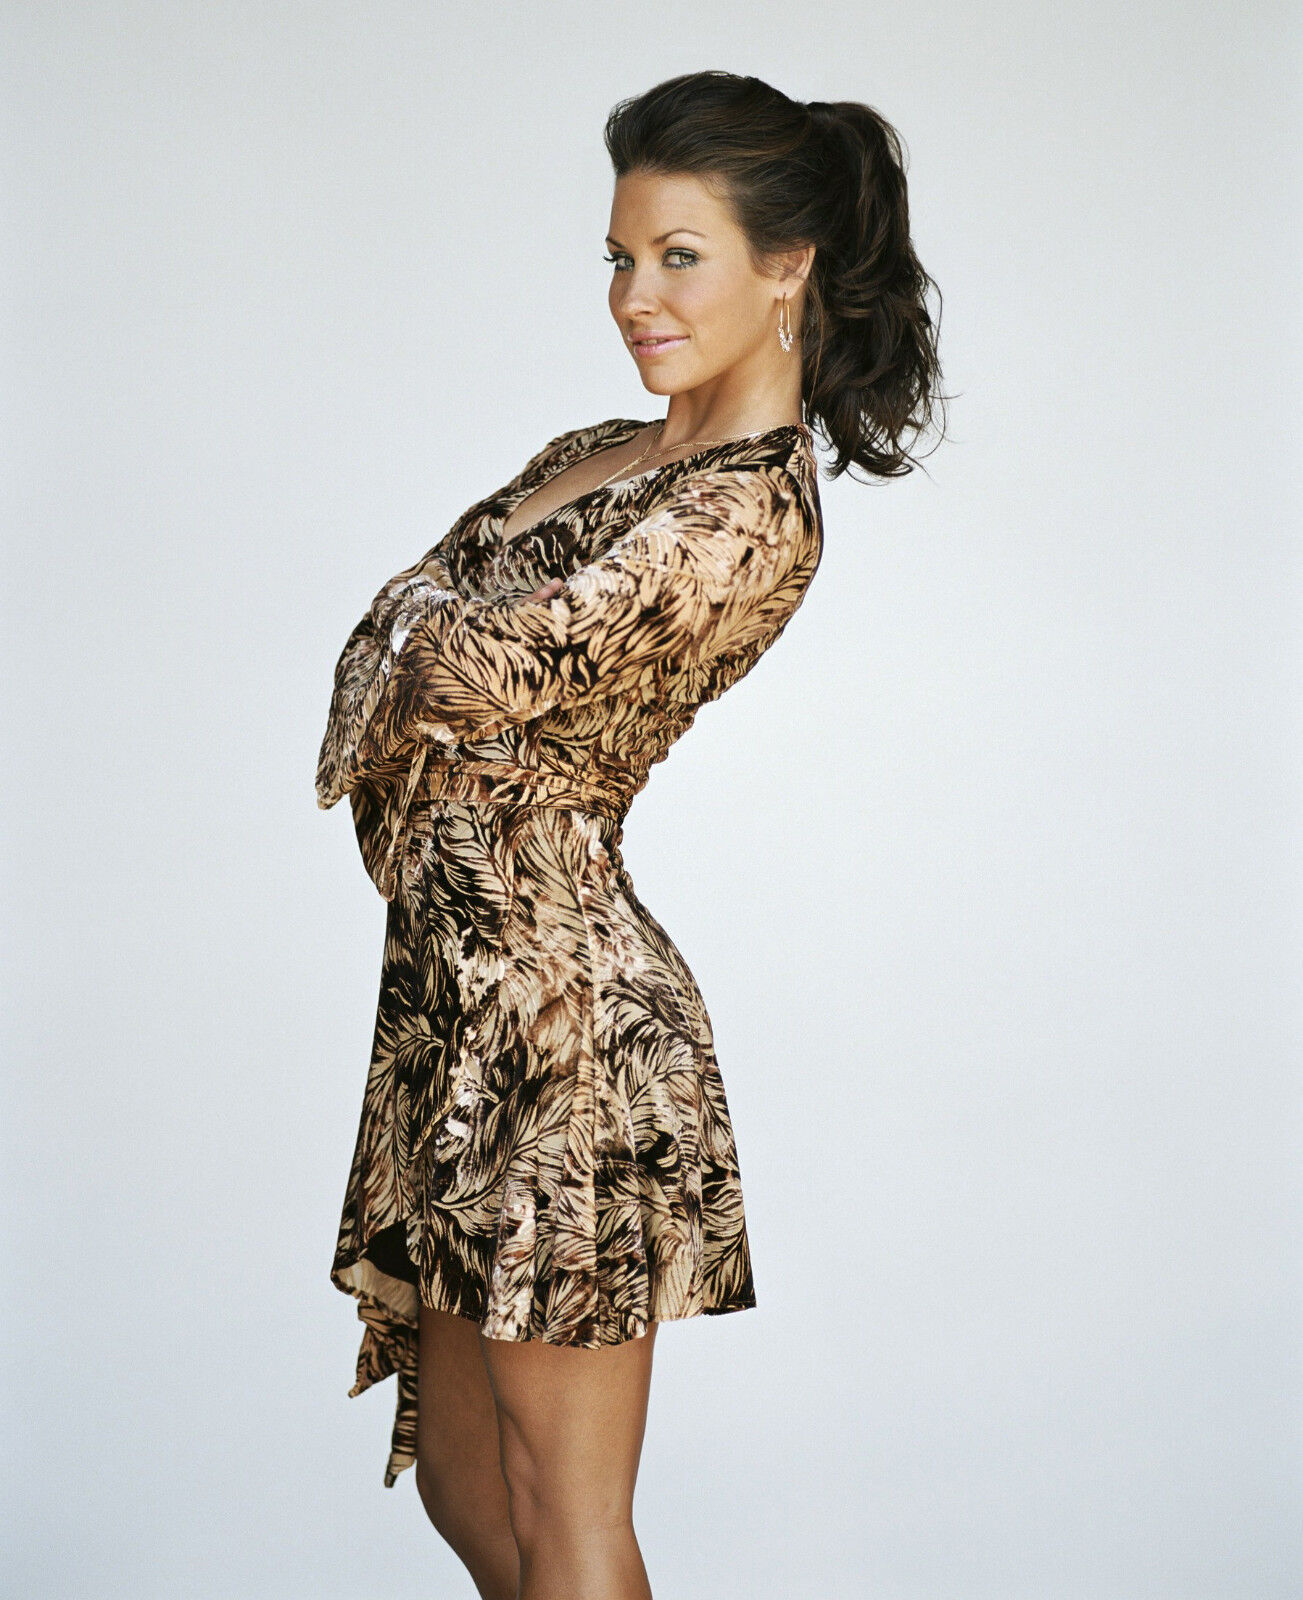 Evangeline lilly 8x10 celebrity photo picture hot sexy 10